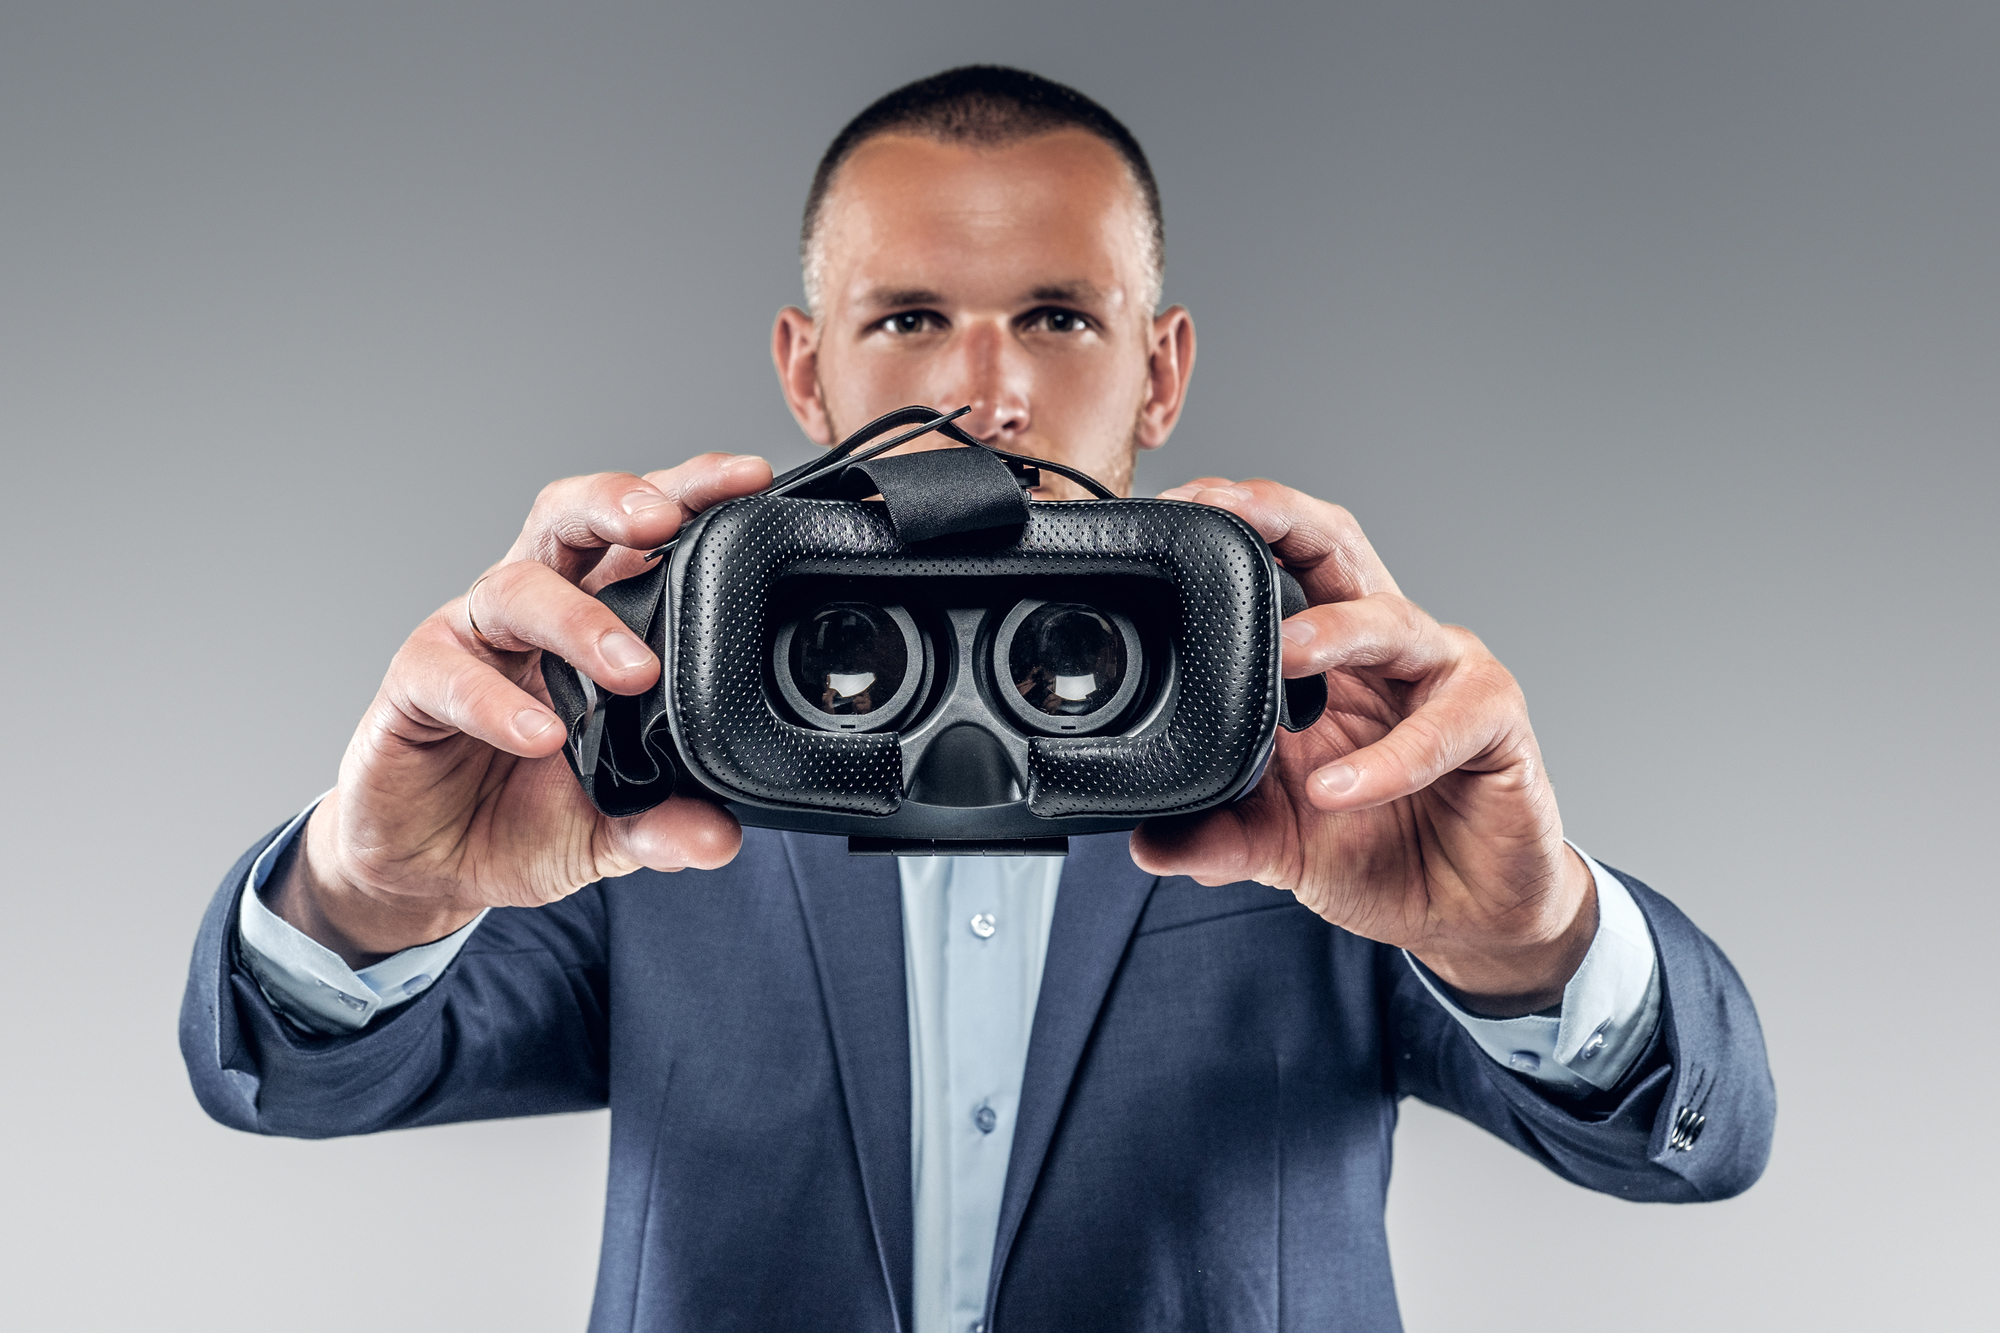 Image of a man showing virtual reality glasses.